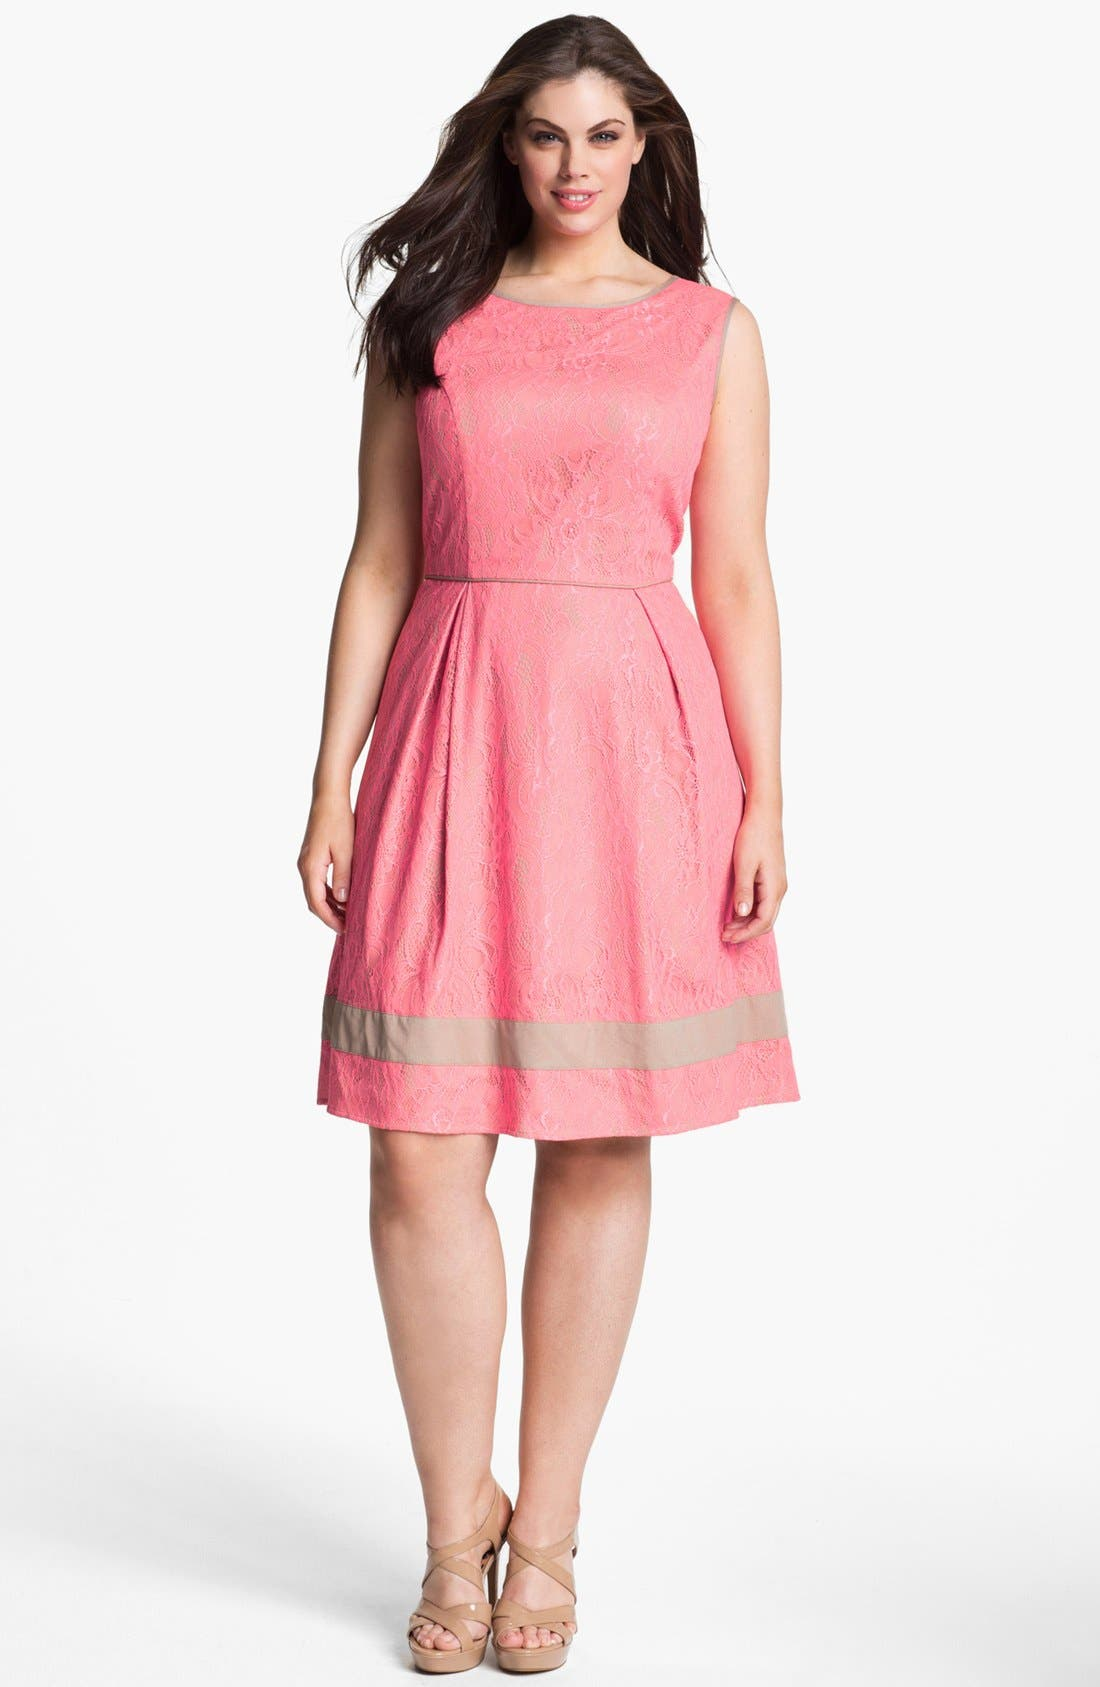 Alternate Image 1 Selected - Jessica Simpson Lace Fit & Flare Dress (Plus Size)